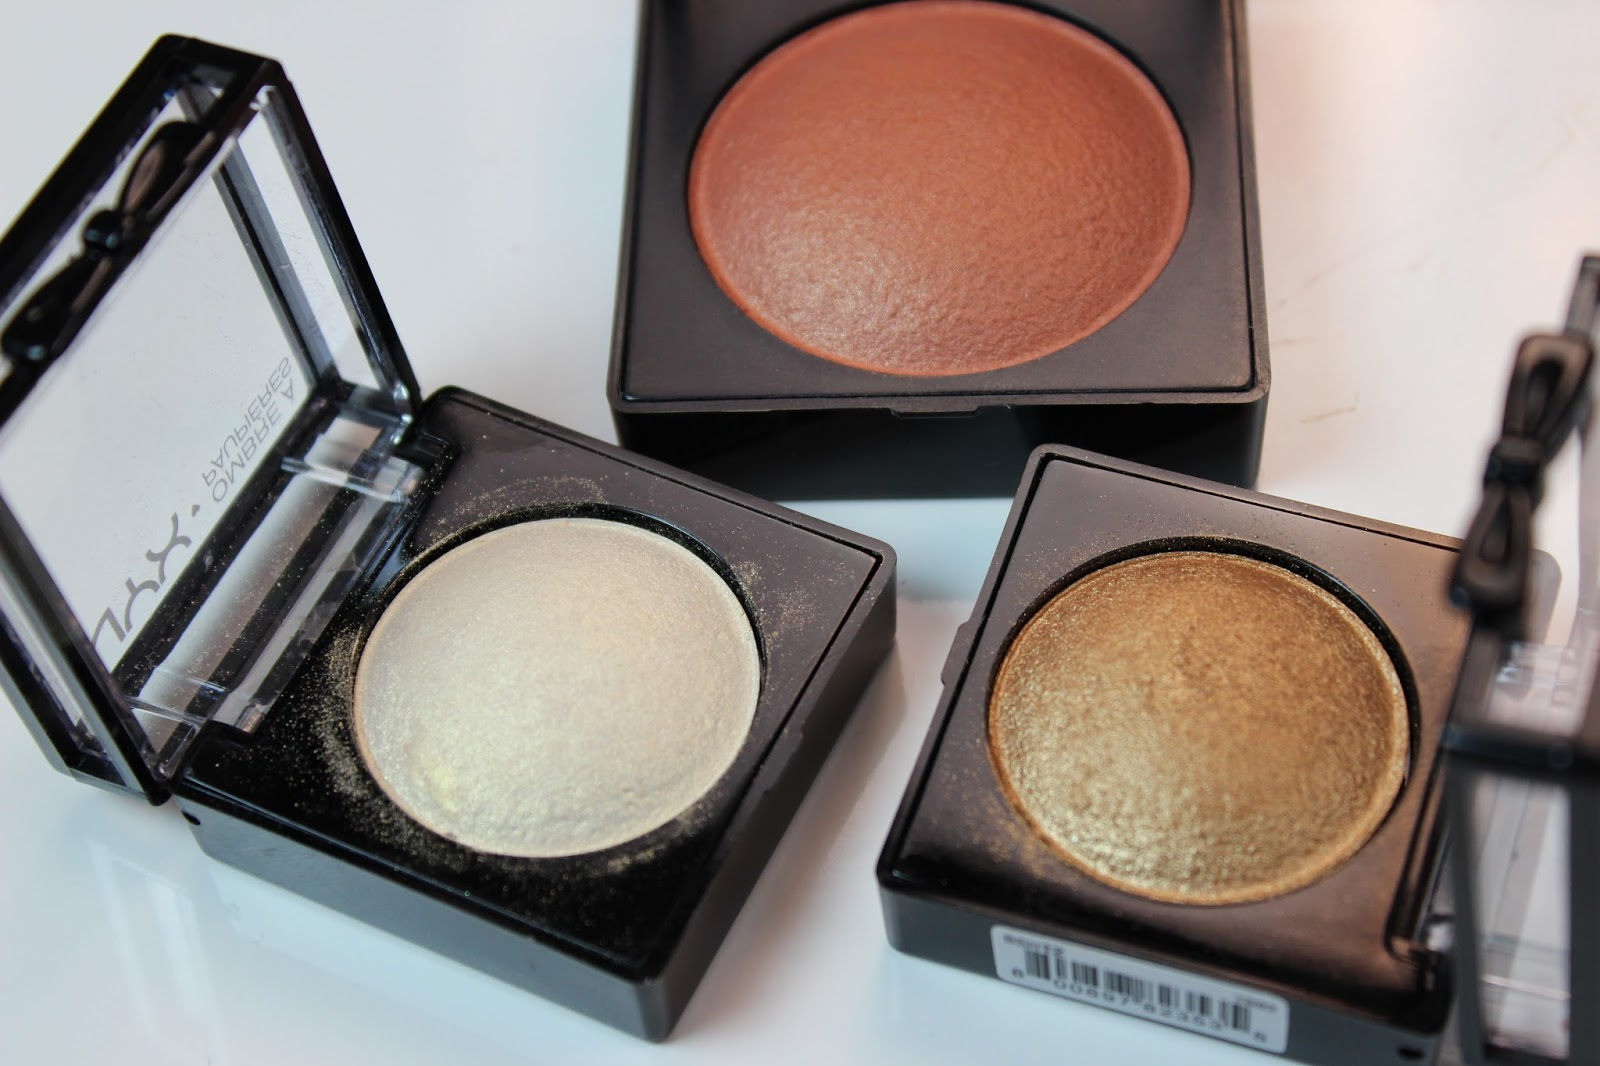 Nyx Baked Blush Ignite Nyx Baked Shadow Blush